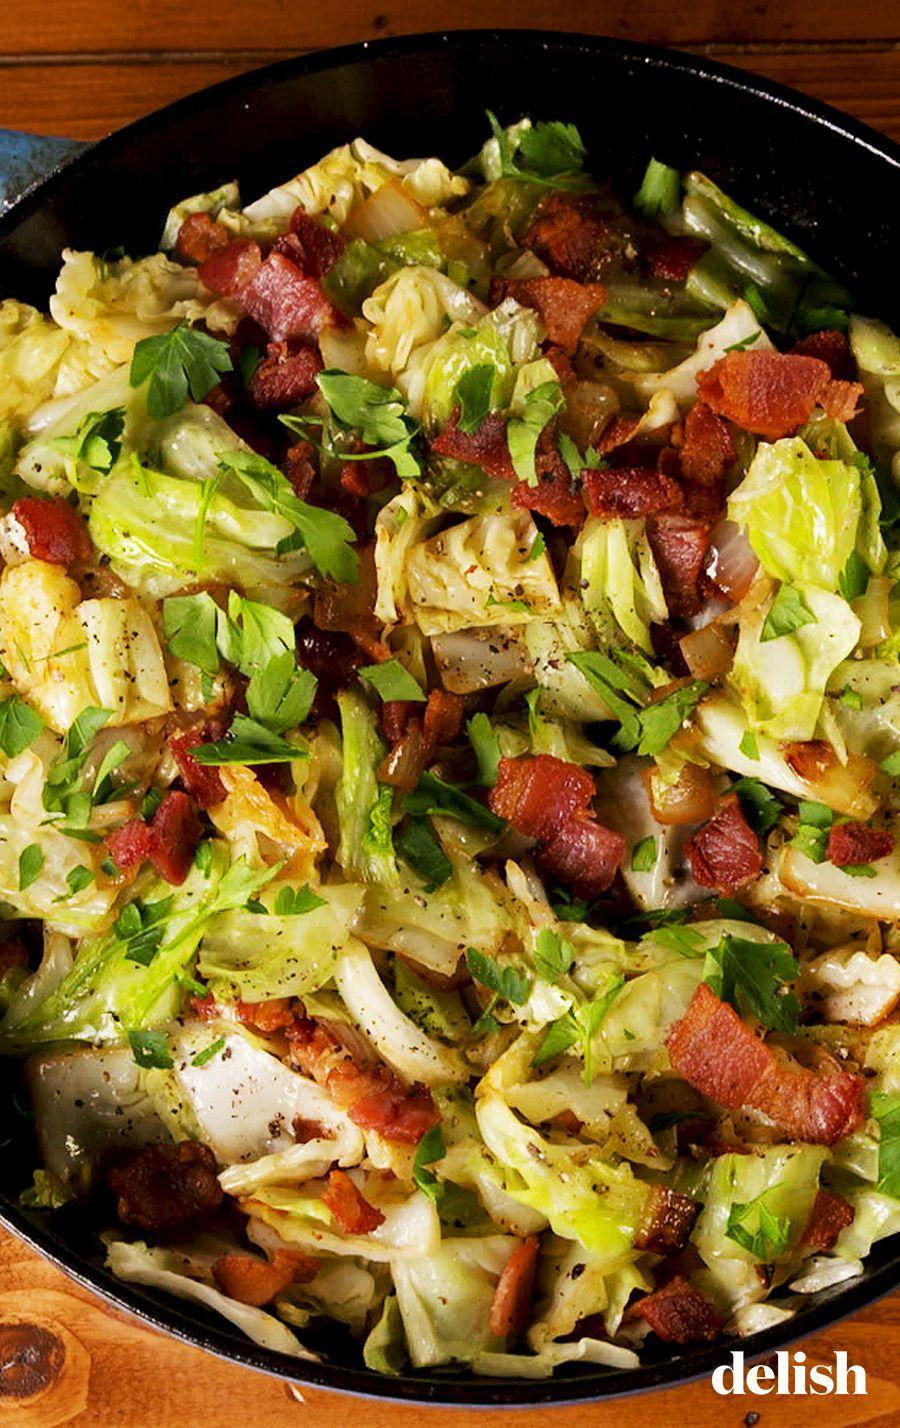 """<p>Cabbage cooked in bacon fat. That's it. That's the caption.</p><p>Get the recipe from <a href=""""https://www.delish.com/cooking/recipe-ideas/a26453749/fried-cabbage-recipe/"""" rel=""""nofollow noopener"""" target=""""_blank"""" data-ylk=""""slk:Delish"""" class=""""link rapid-noclick-resp"""">Delish</a>. </p>"""